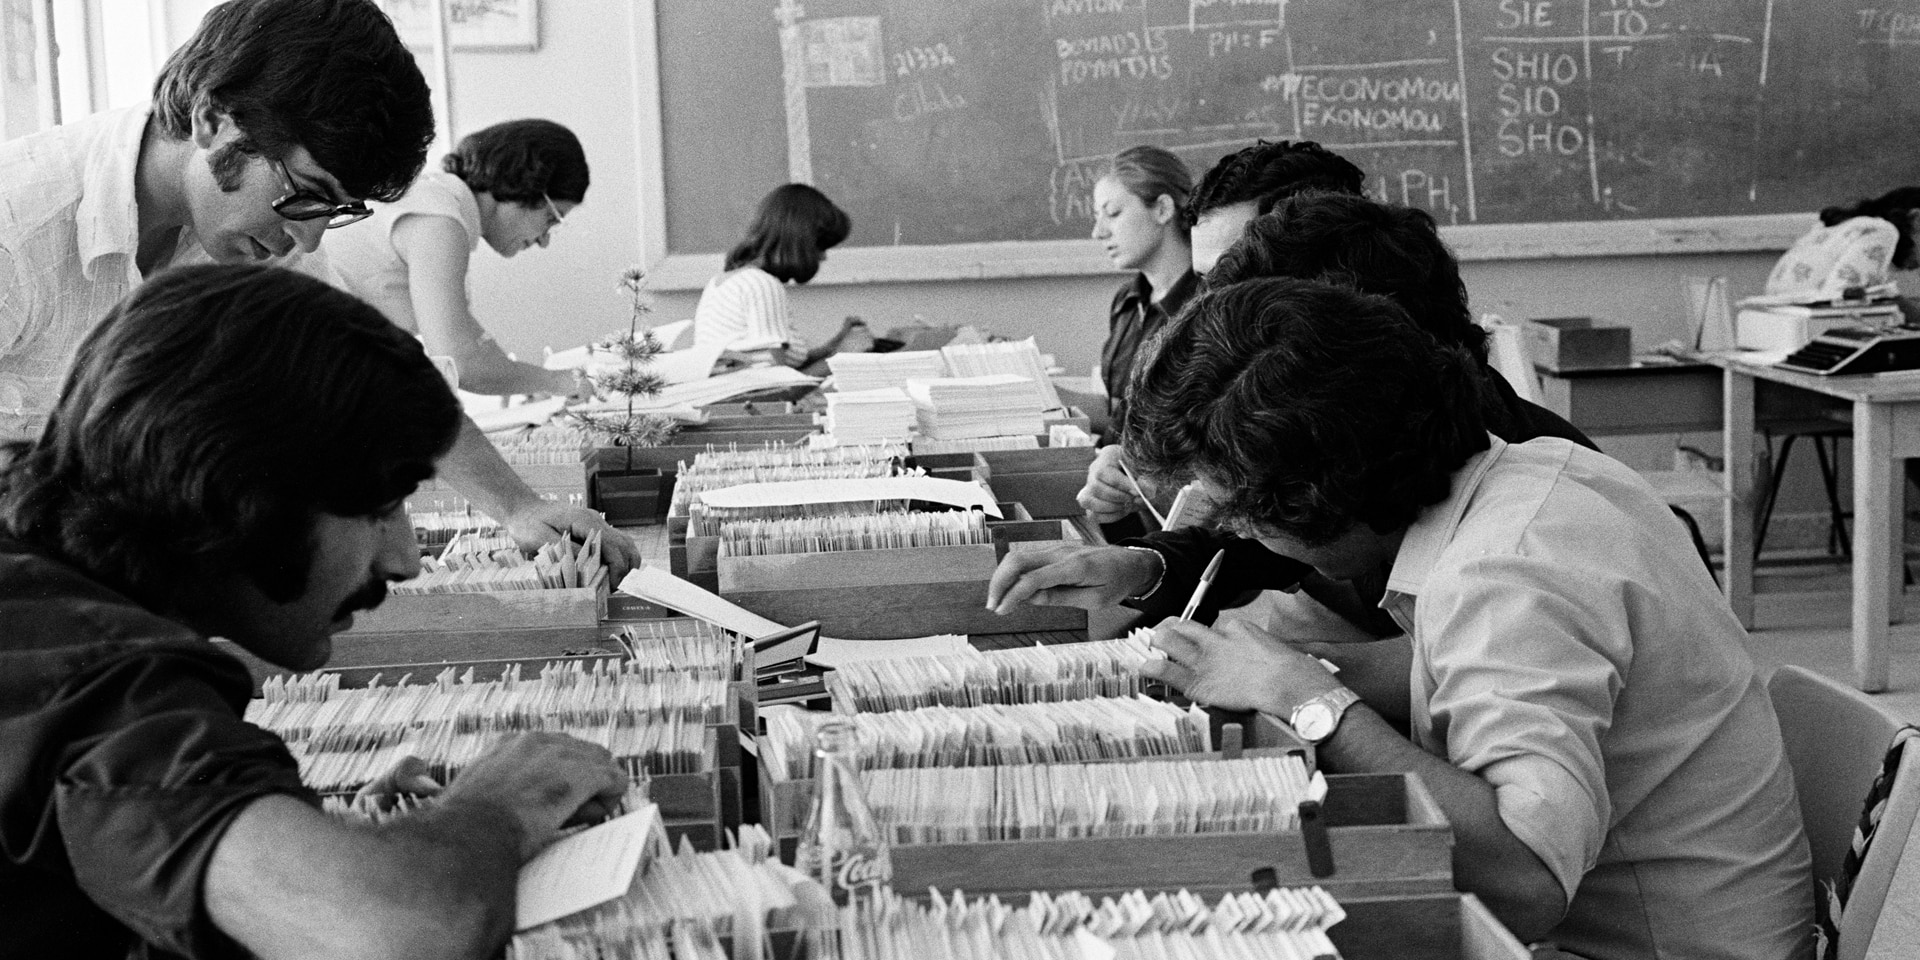 The picture, black and white, shows an office space in 1974. The desks are covered with index boxes filled with index cards. Eight people, concentrated, are working hard.